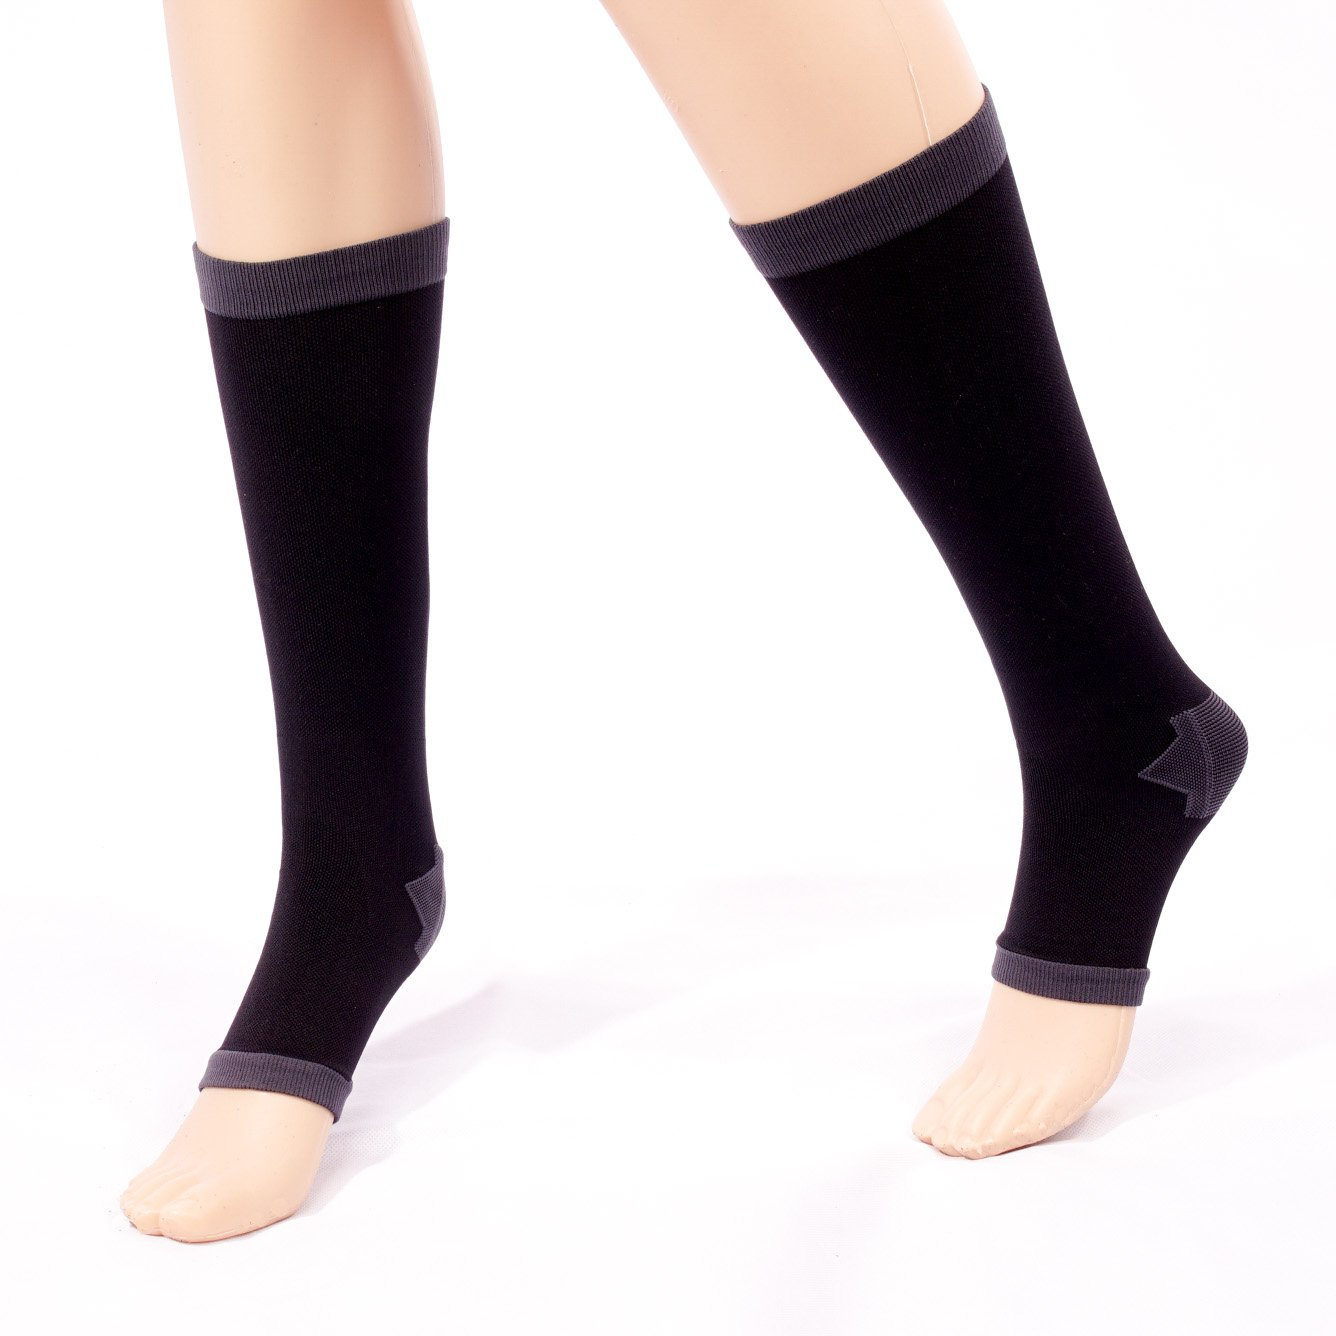 Teeoff Womens Open Toe Compression Socks Knee High 1 Pair Toeless Compression Stockings for Air Travel Nurses Running